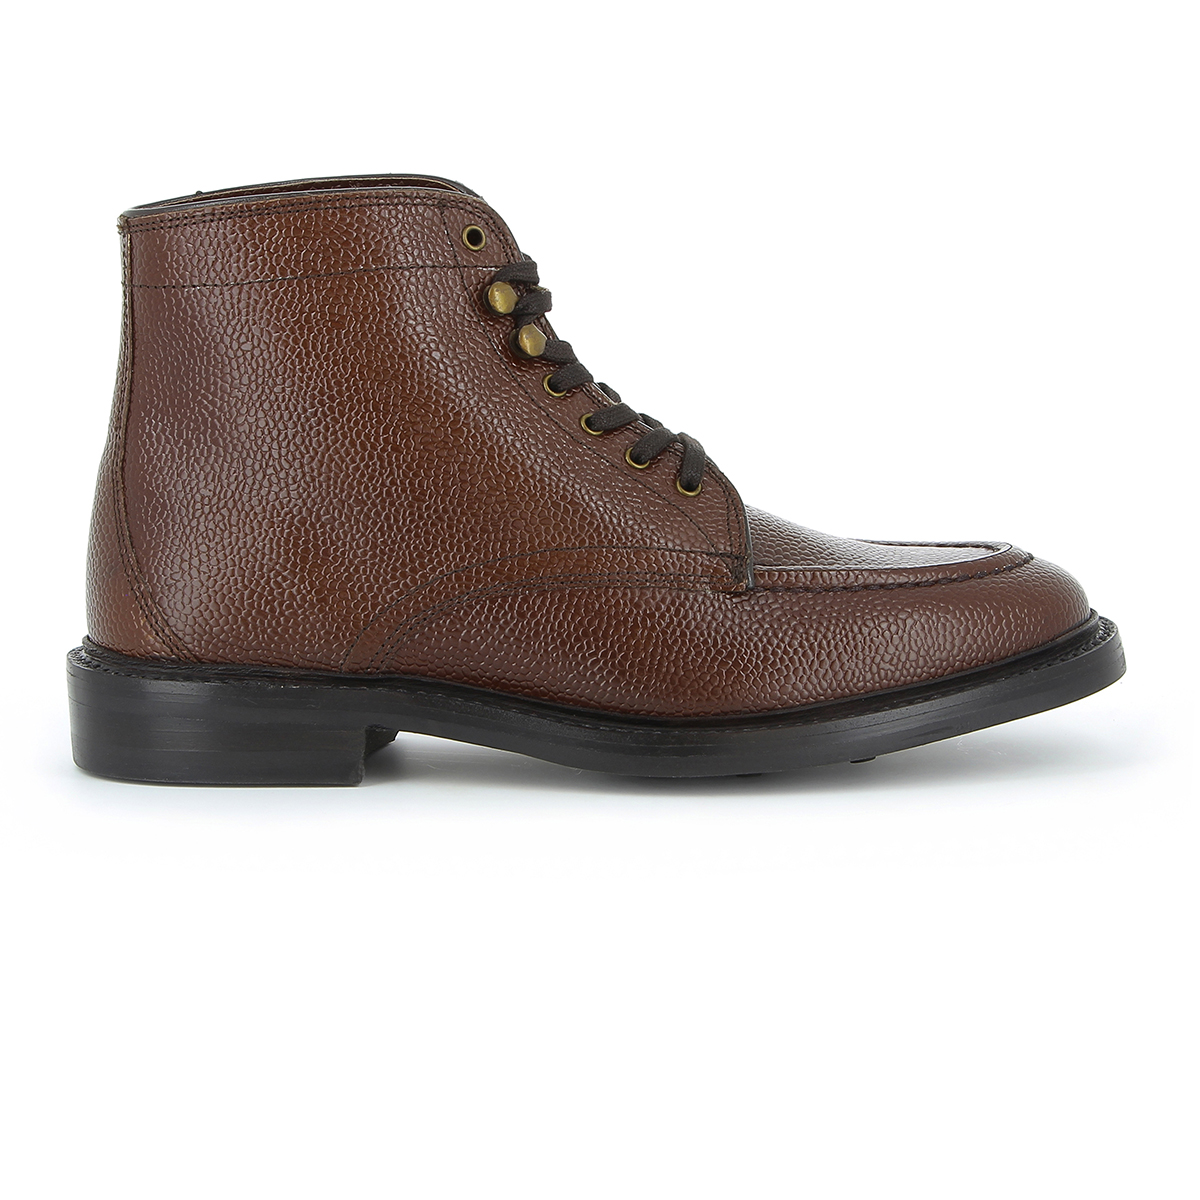 Monogram Apron Boot Mid Brown Grain Leather